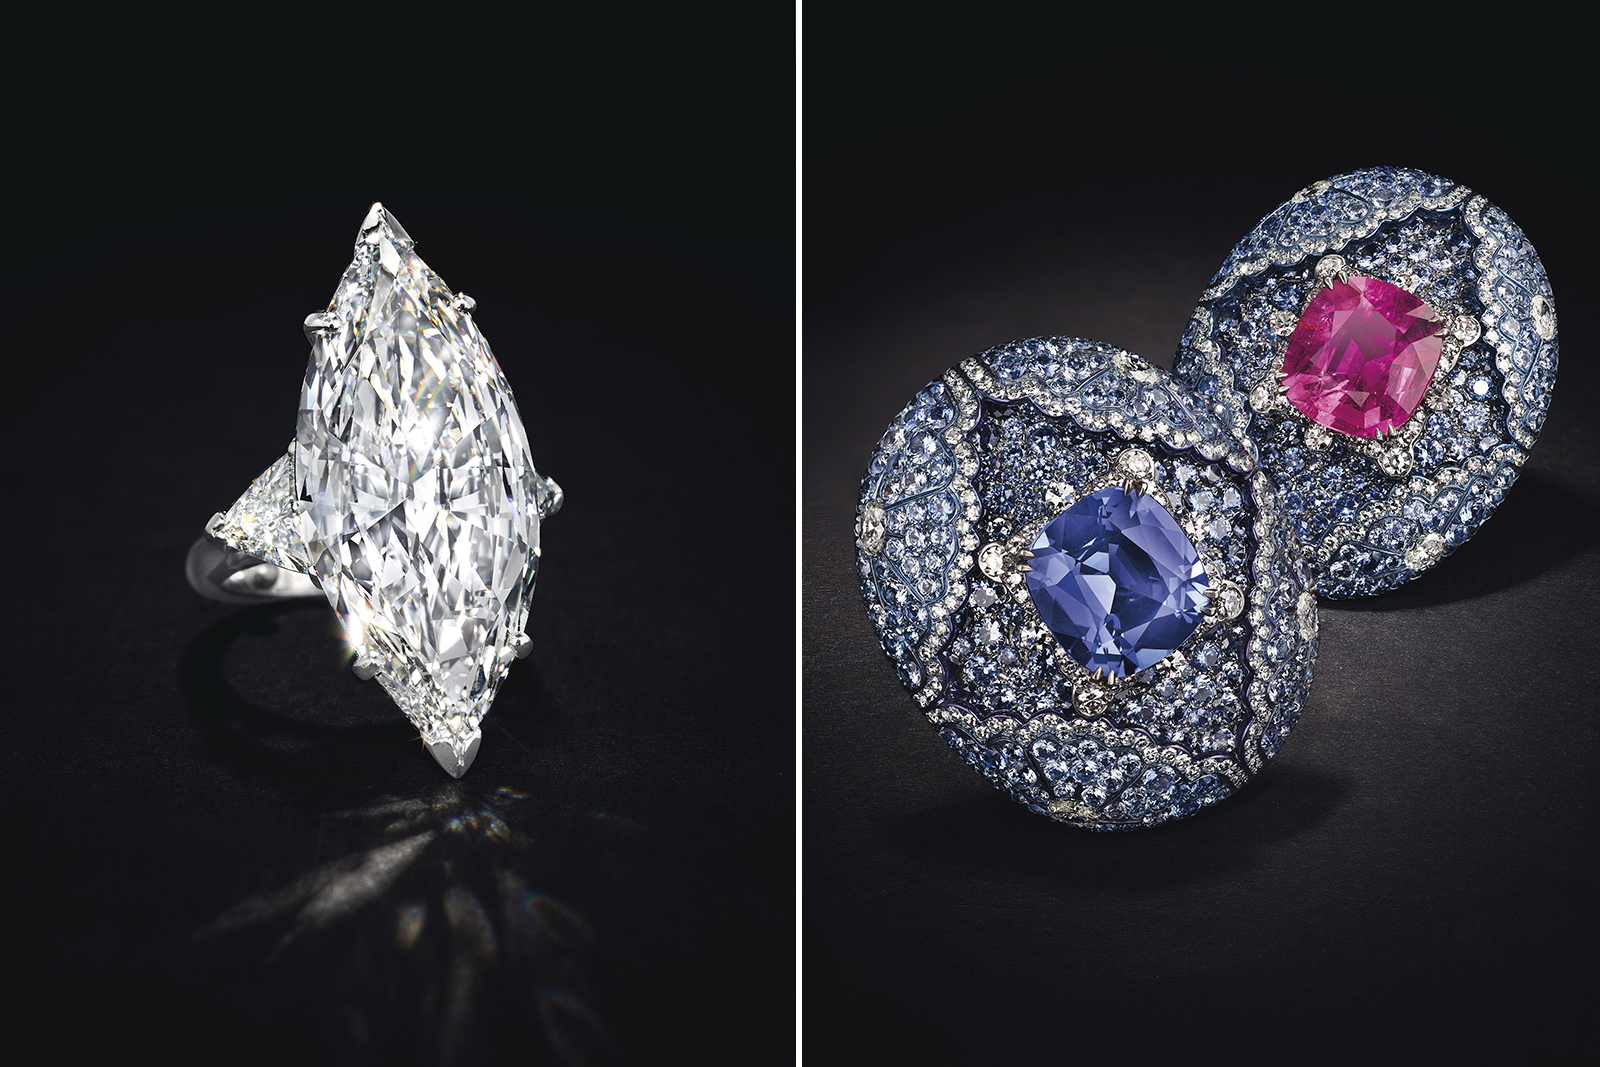 Left: 16.69 cts marquise cut D-colour diamond ring. Right: Carnet earrings with rubellites, tanzanites, sapphires and diamonds